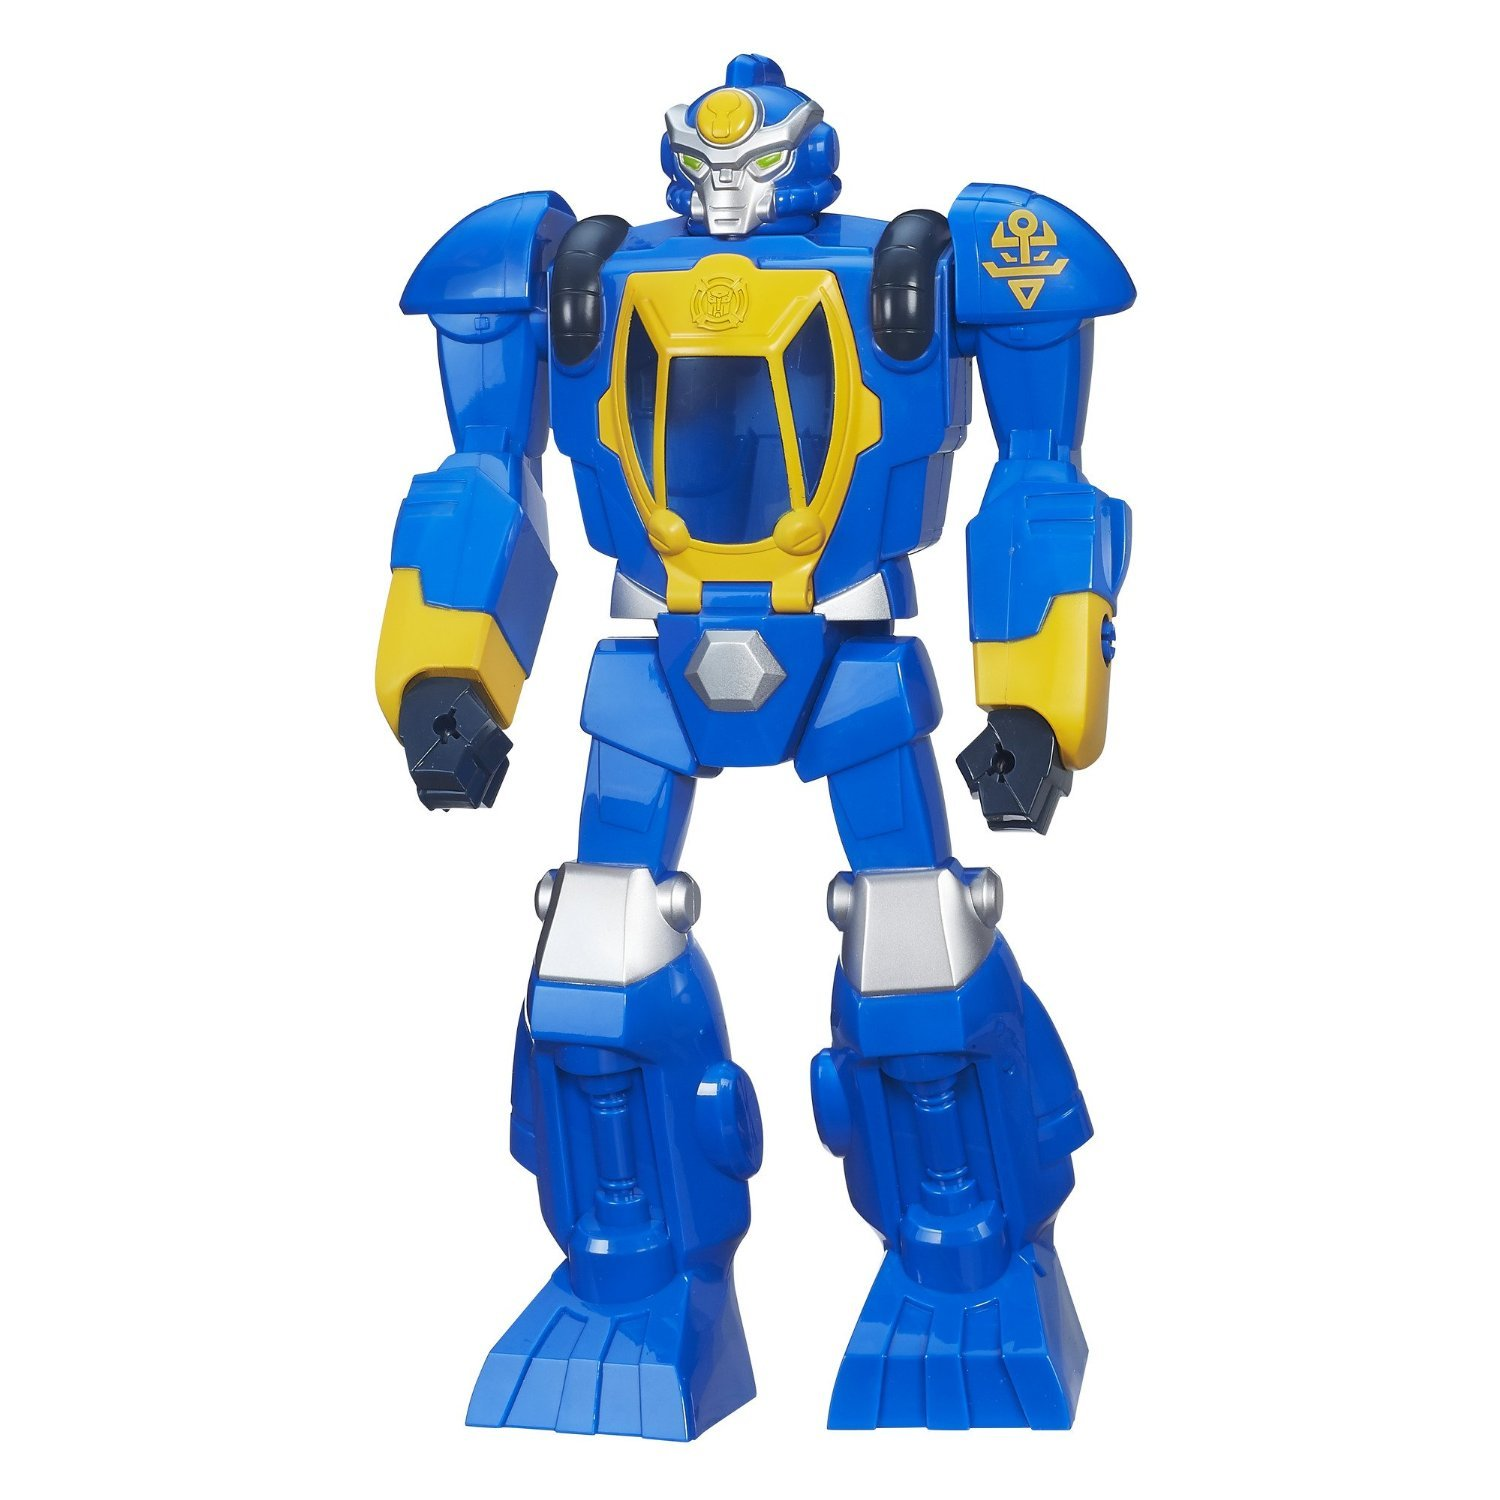 ホットセール Playskool Transformers Rescue Bots High Tide Transformers Playskool Figure [並行輸入品] Rescue B01K1URZT2, ラグカーペット専門店 ゆうあい:0c92bf72 --- clubavenue.eu